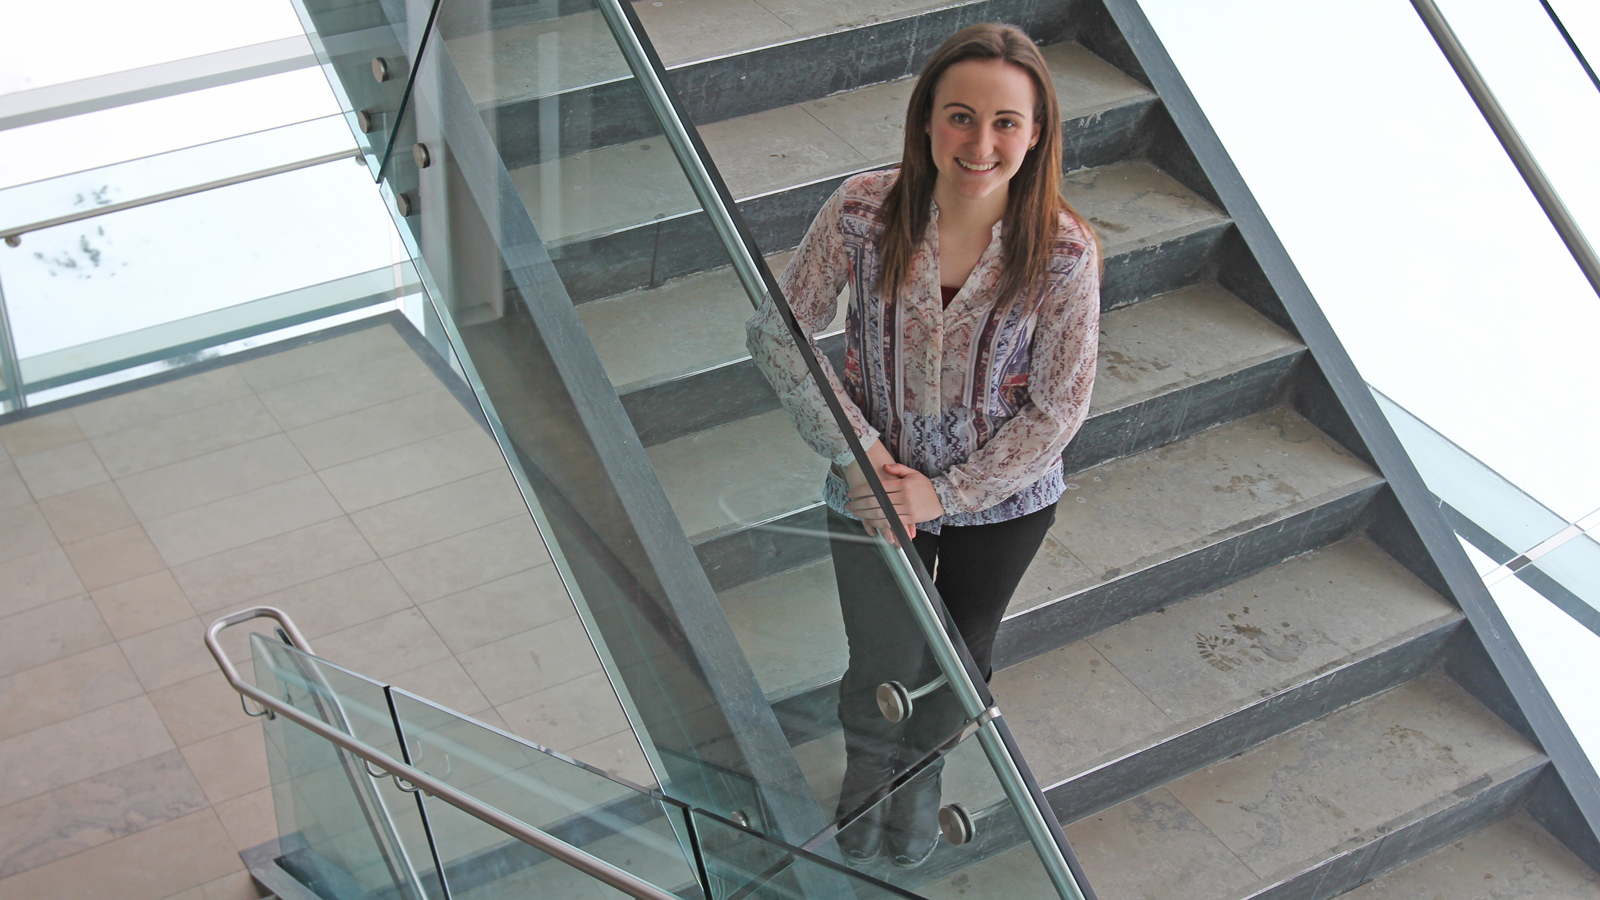 Brock business student Jennifer Philpott's day turned around after learning she'd won a $5,500 Futures Fund Scholarship for Outstanding Leadership.